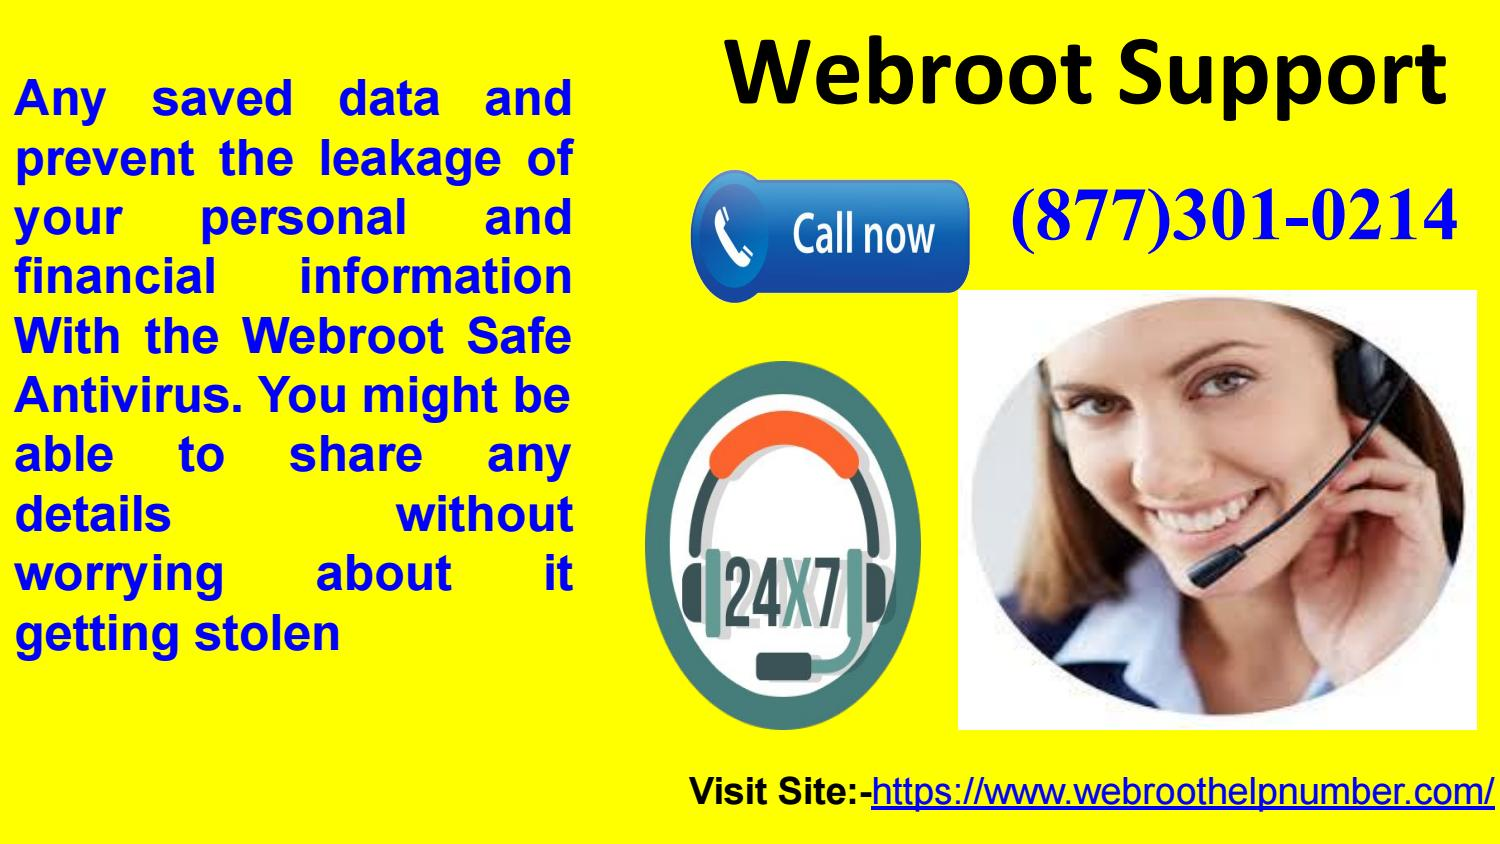 What are the offer For Webroot? Webroot Safe